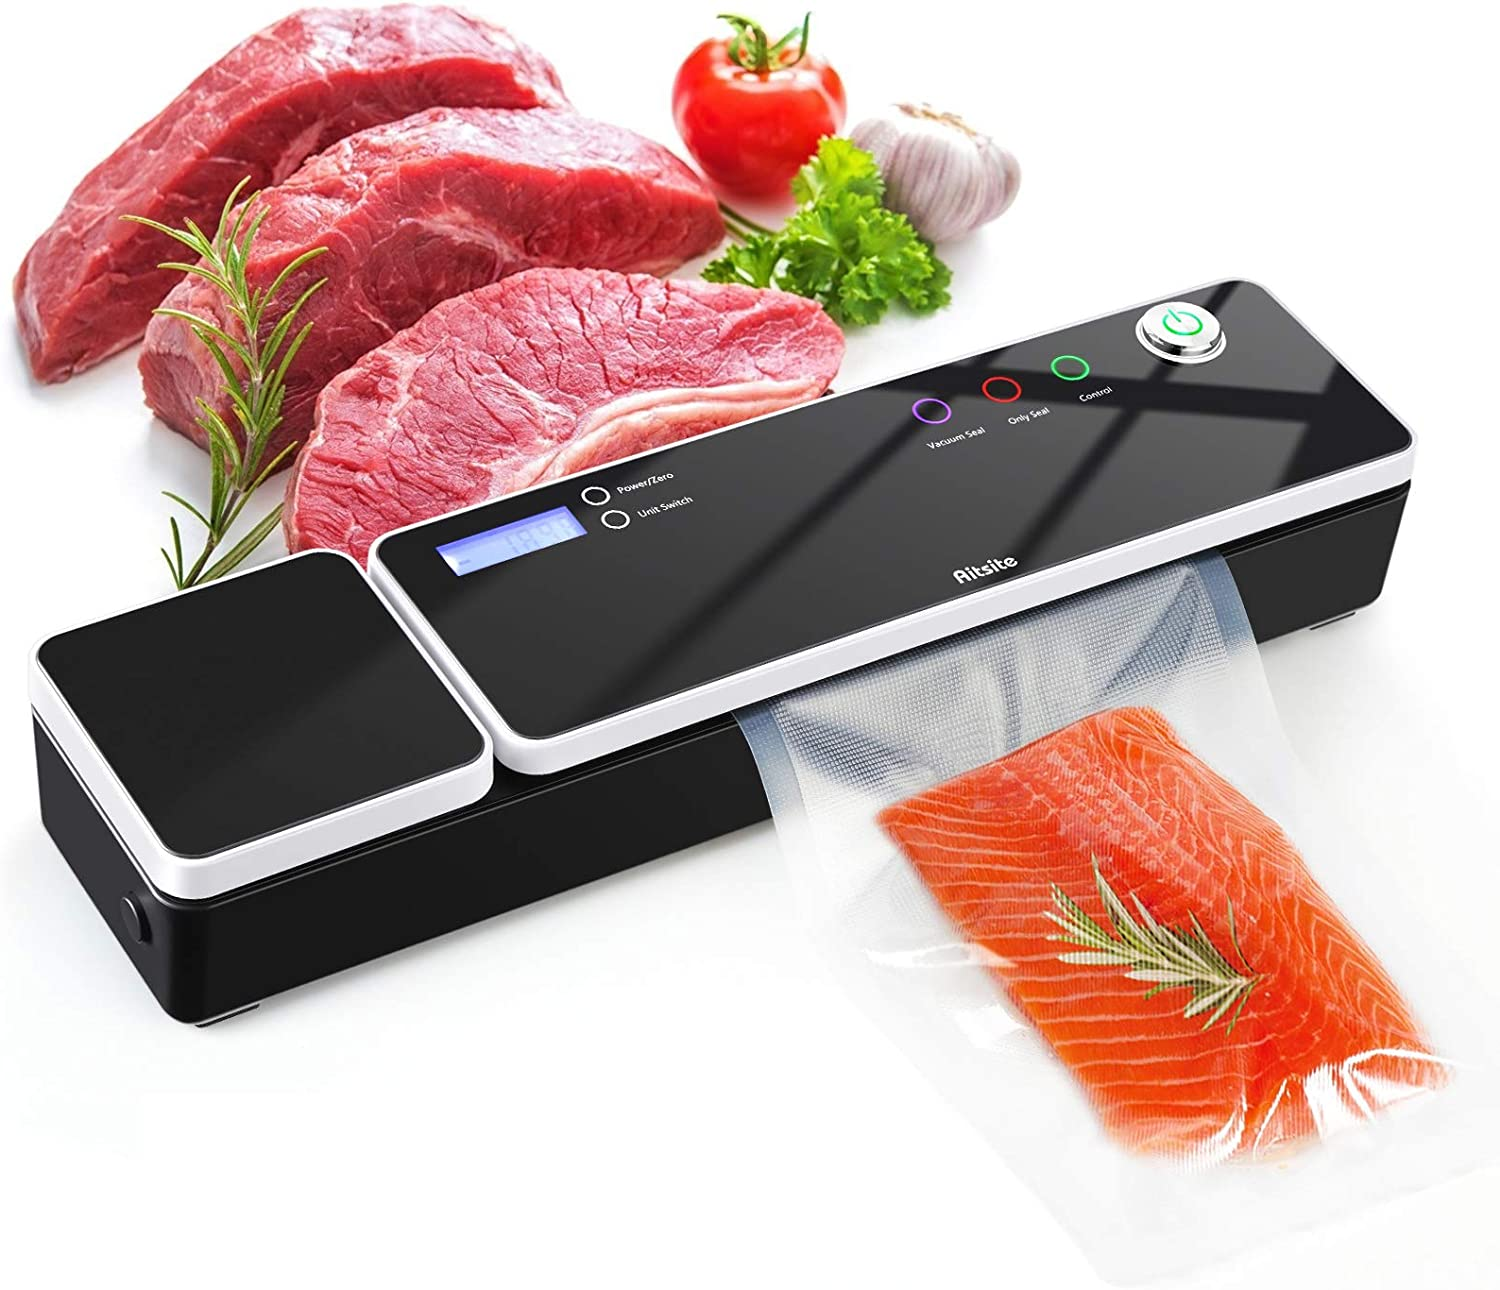 Vacuum Sealer Machine, Aitsite Automatic Food Sealer for Food Savers/Food Scale|Led Indicator Lights|Easy to Clean|Dry & Moist Food Modes| Compact Design|Starter Kit (BLACK)